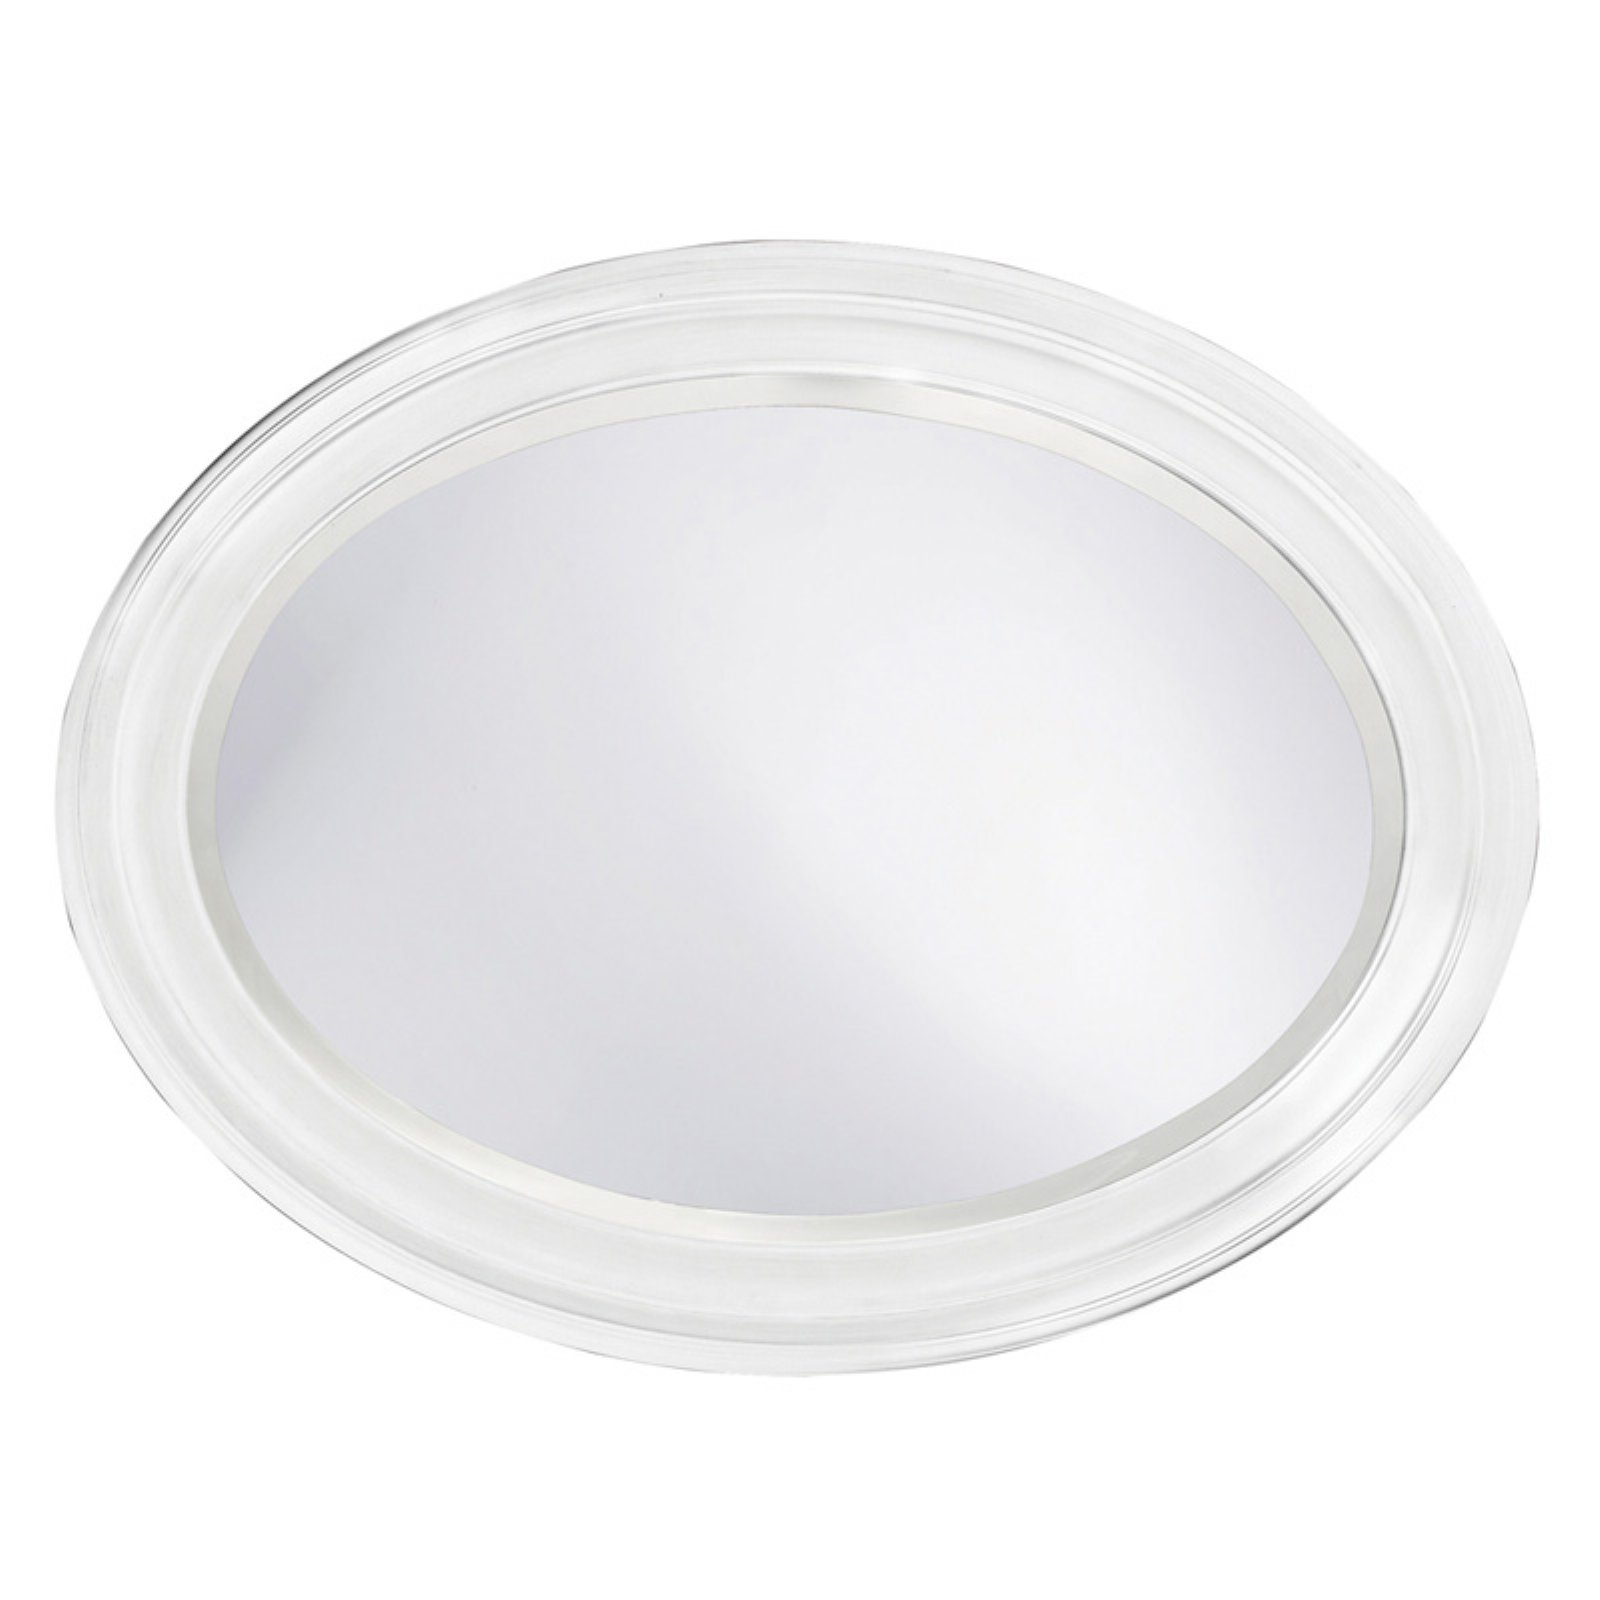 Belham Living Oval Wall Mirror White 25W x 33H in. by Howard Elliott Collection